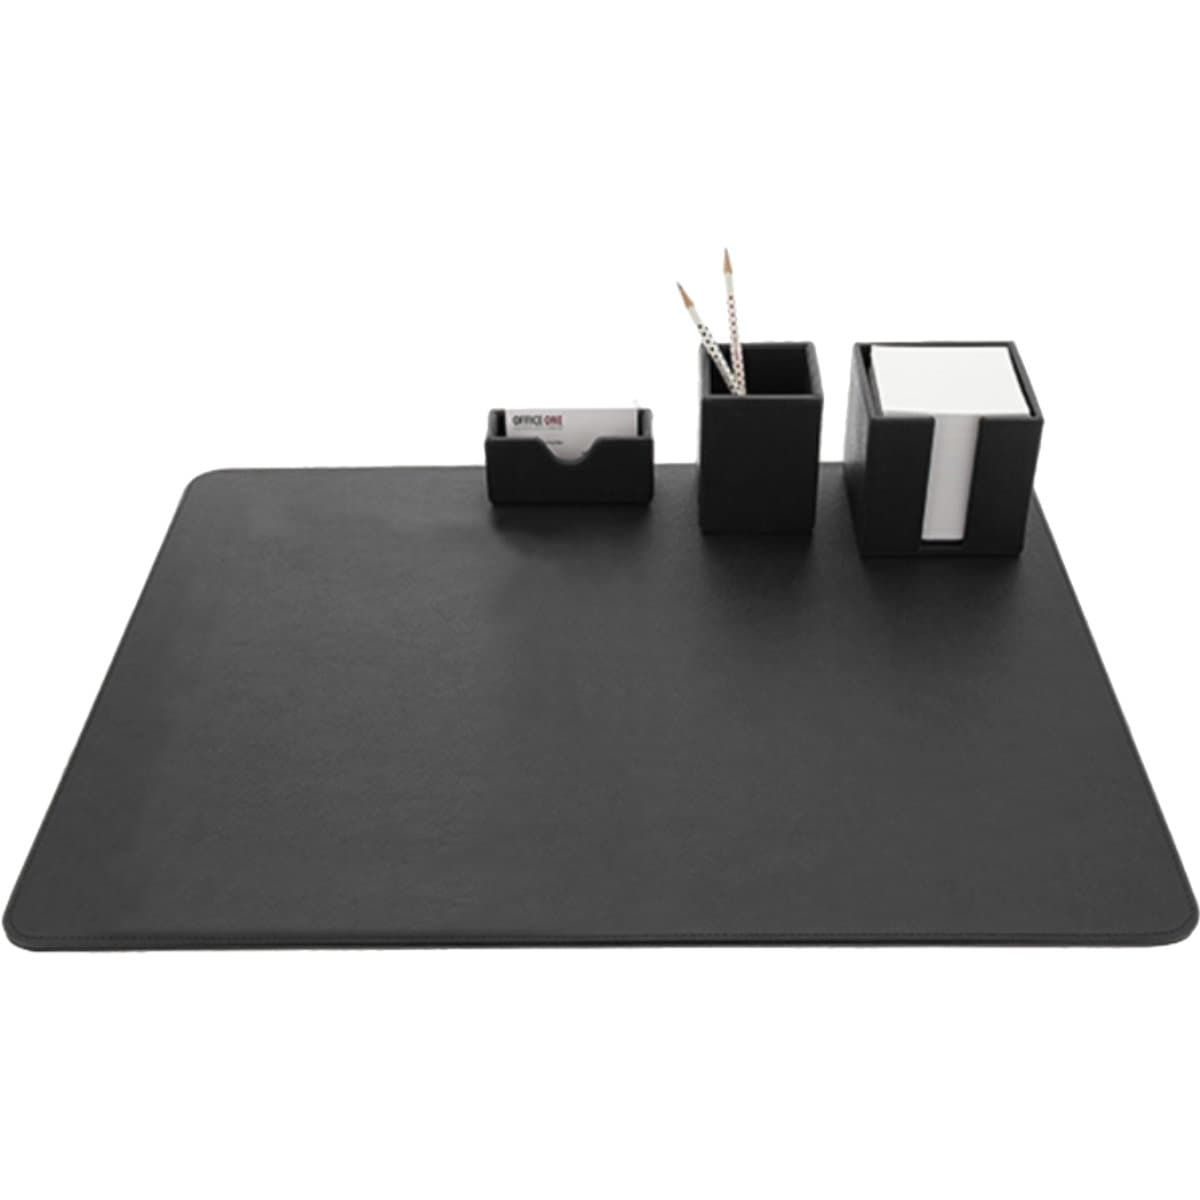 Konrad S. Desk Set, PU Leather, Black